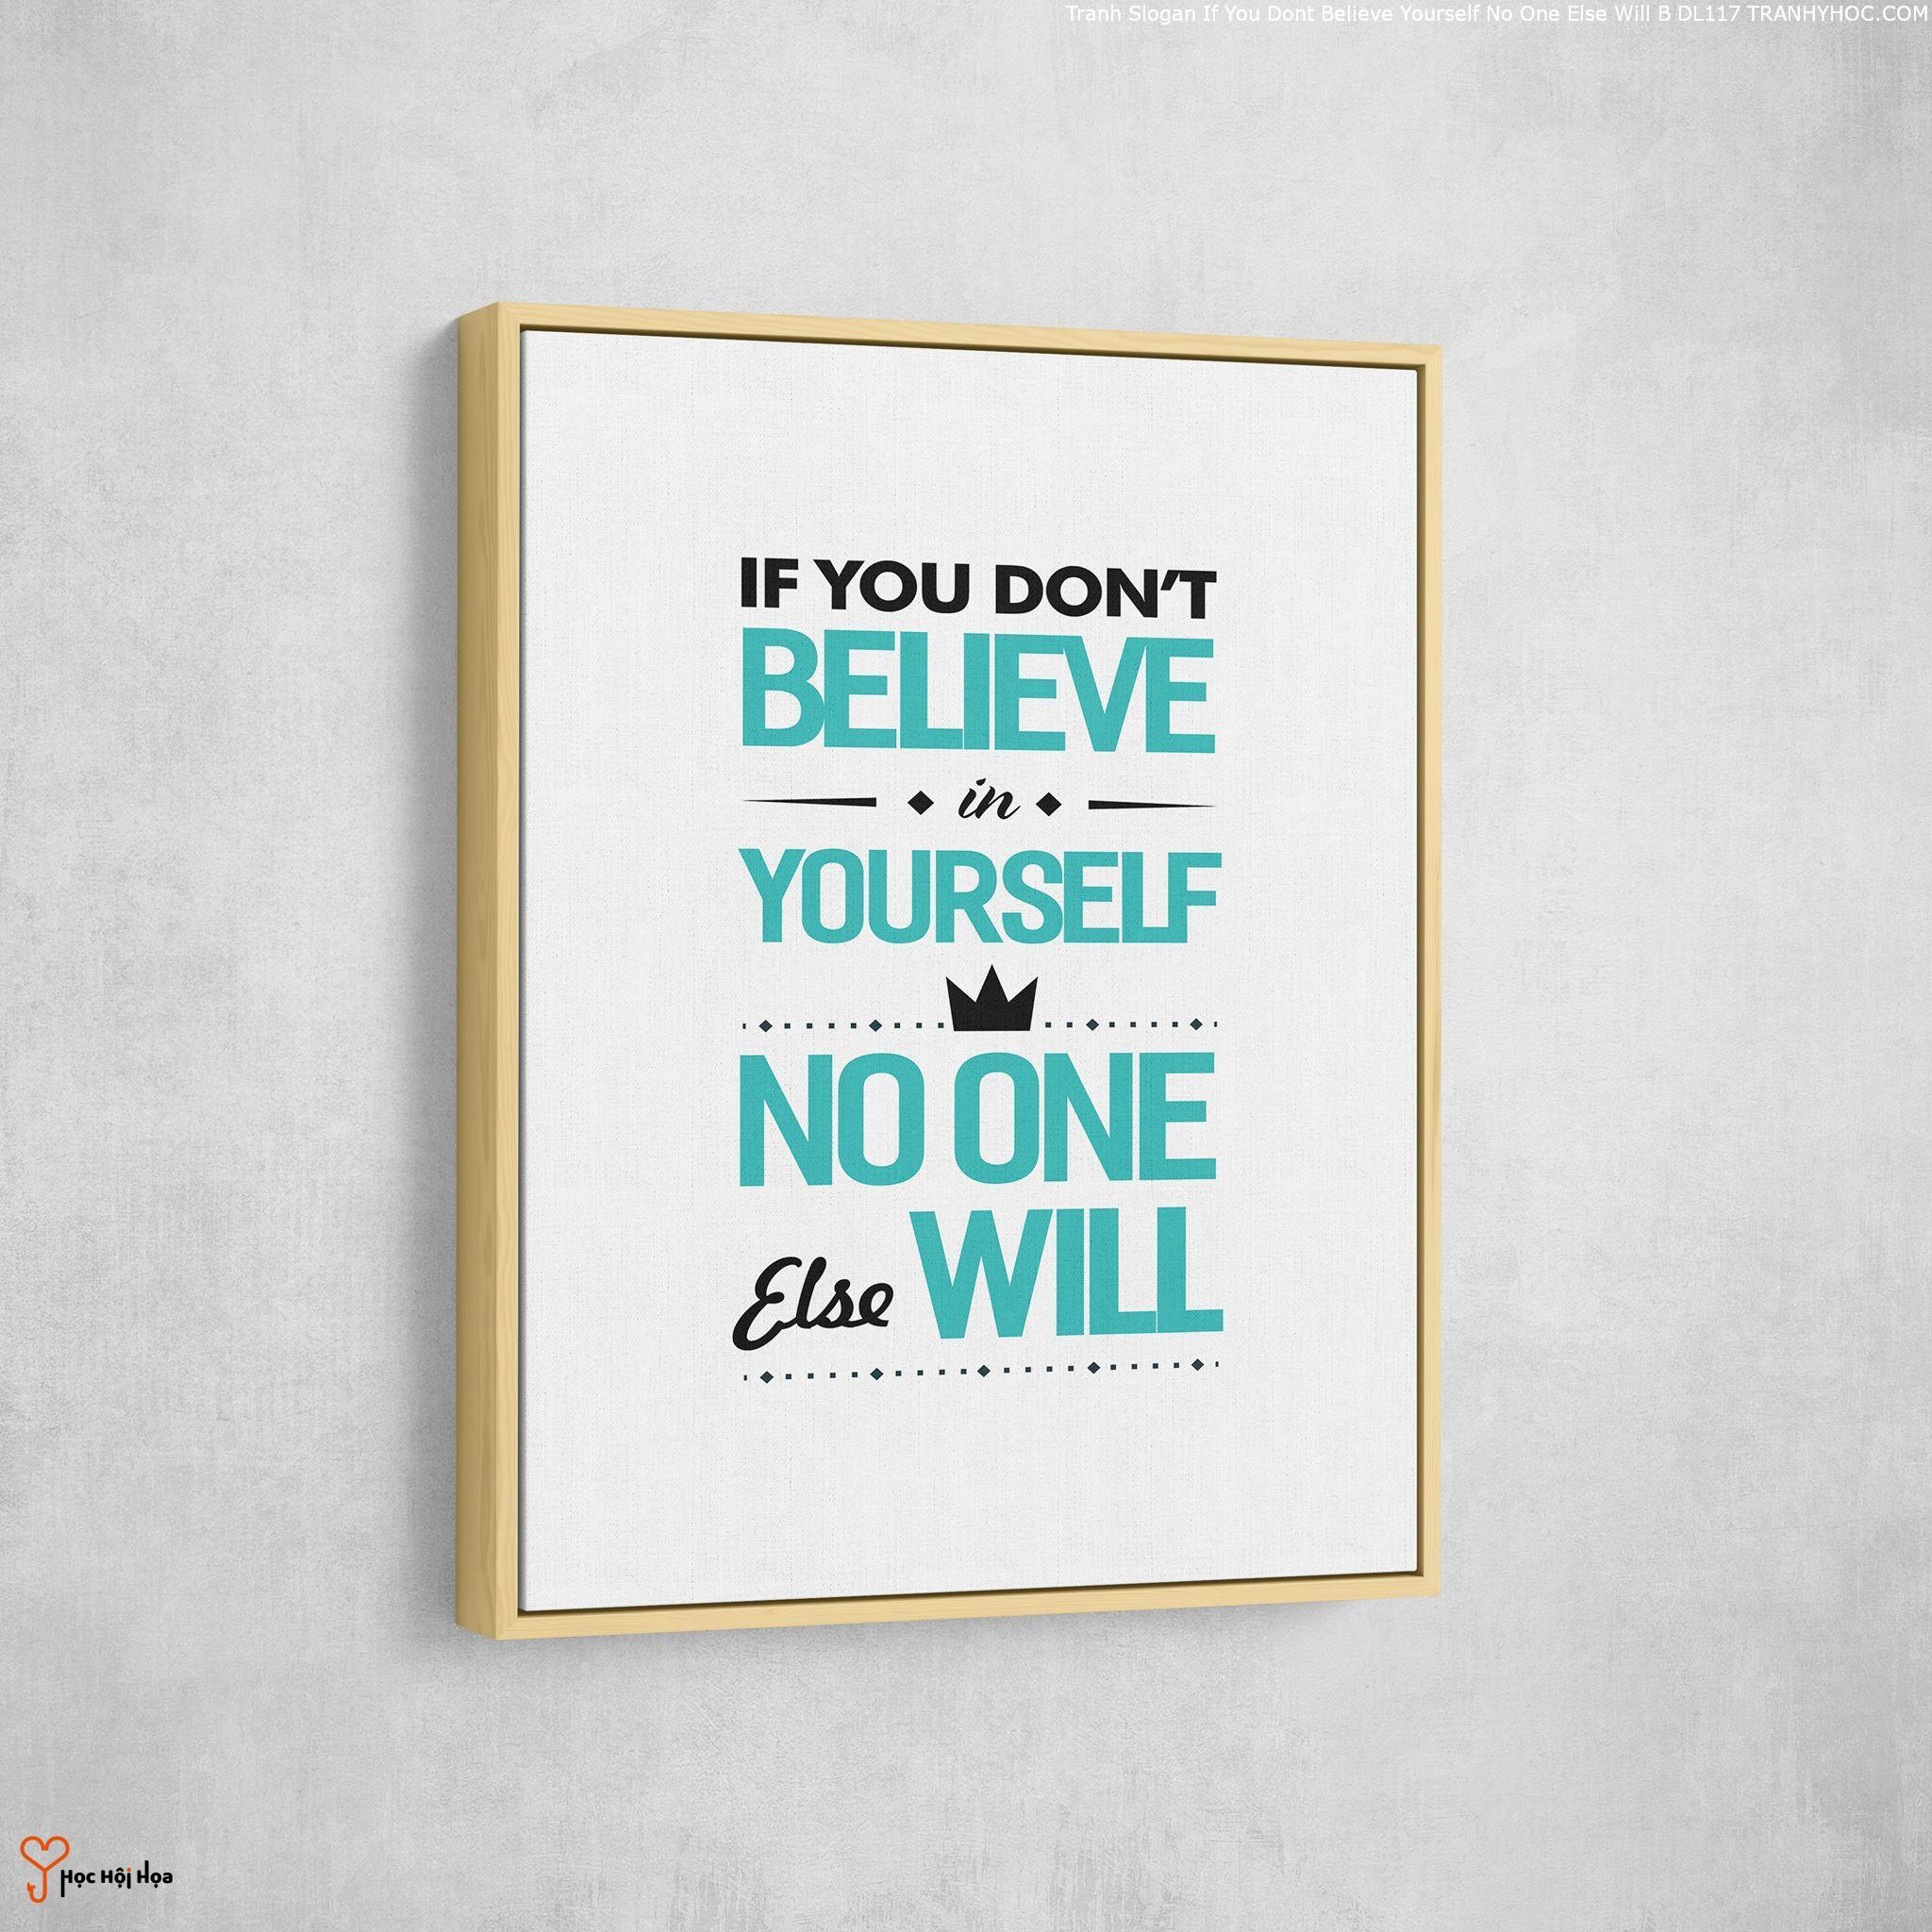 Tranh Slogan If You Dont Believe Yourself No One Else Will B DL117